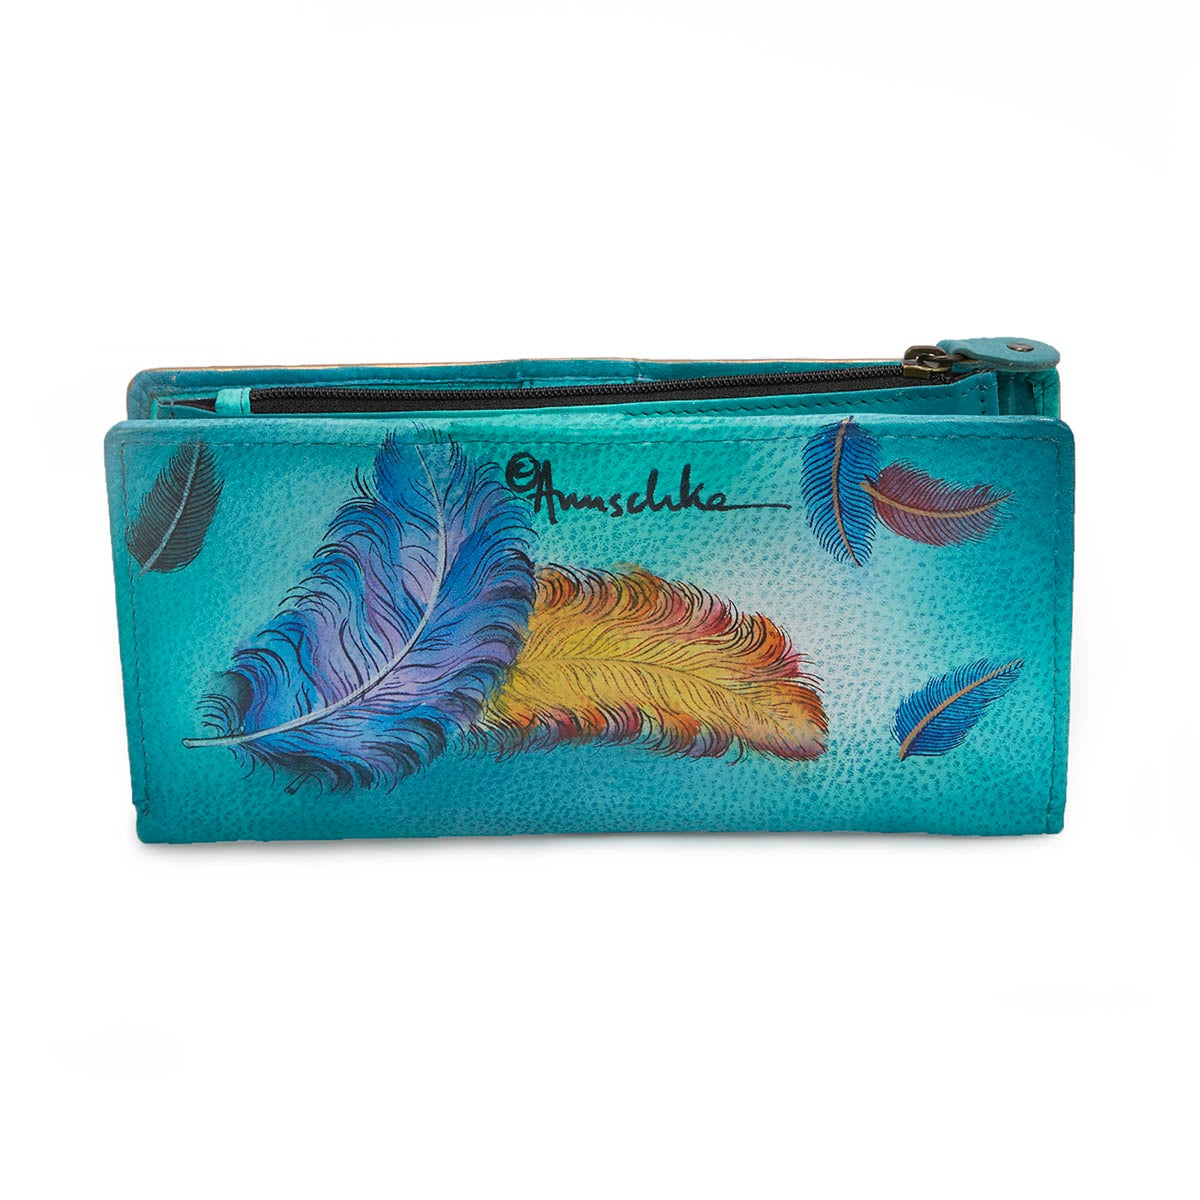 Printed leather Floating Feathers clutch